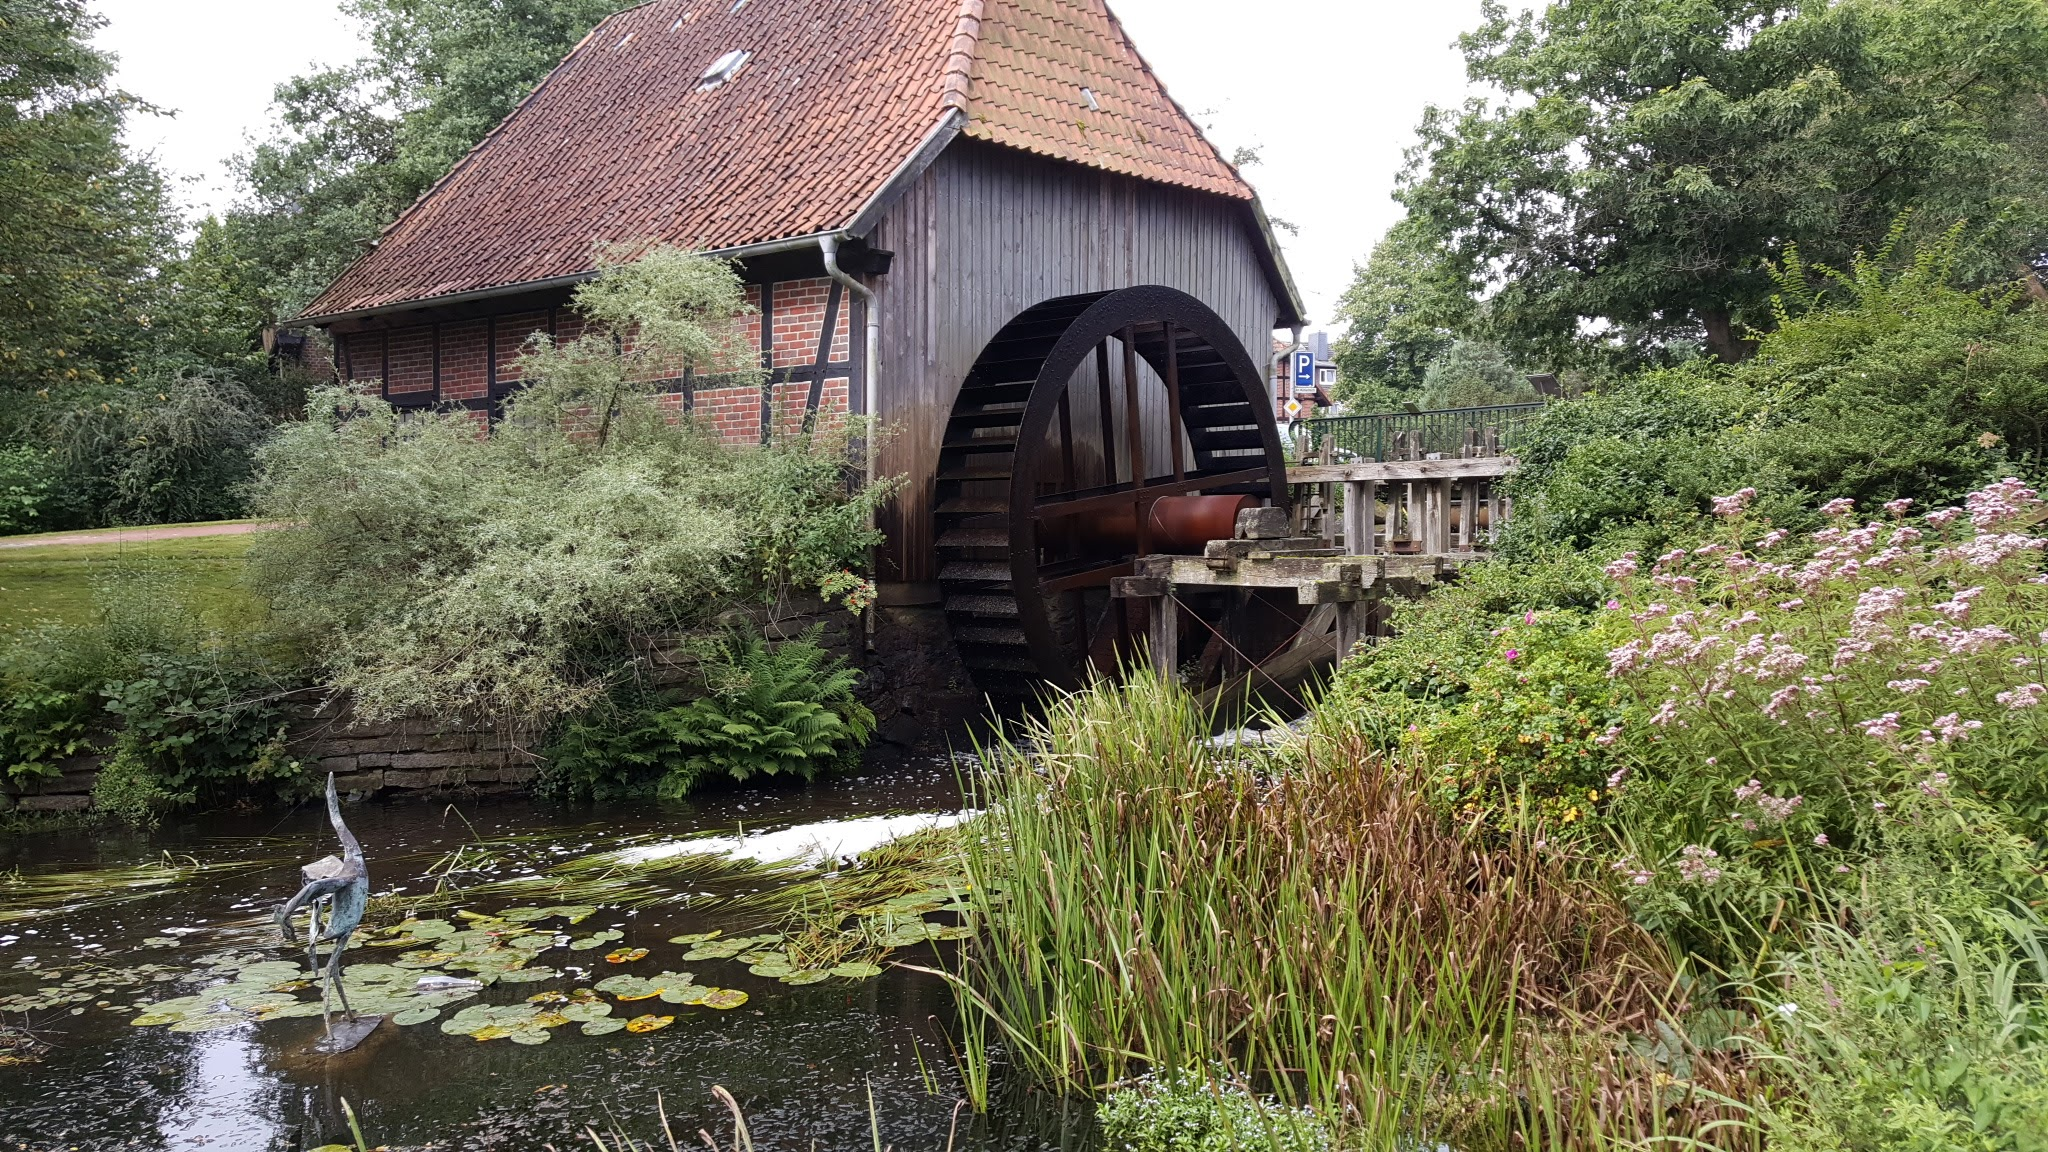 Mühle in Munster